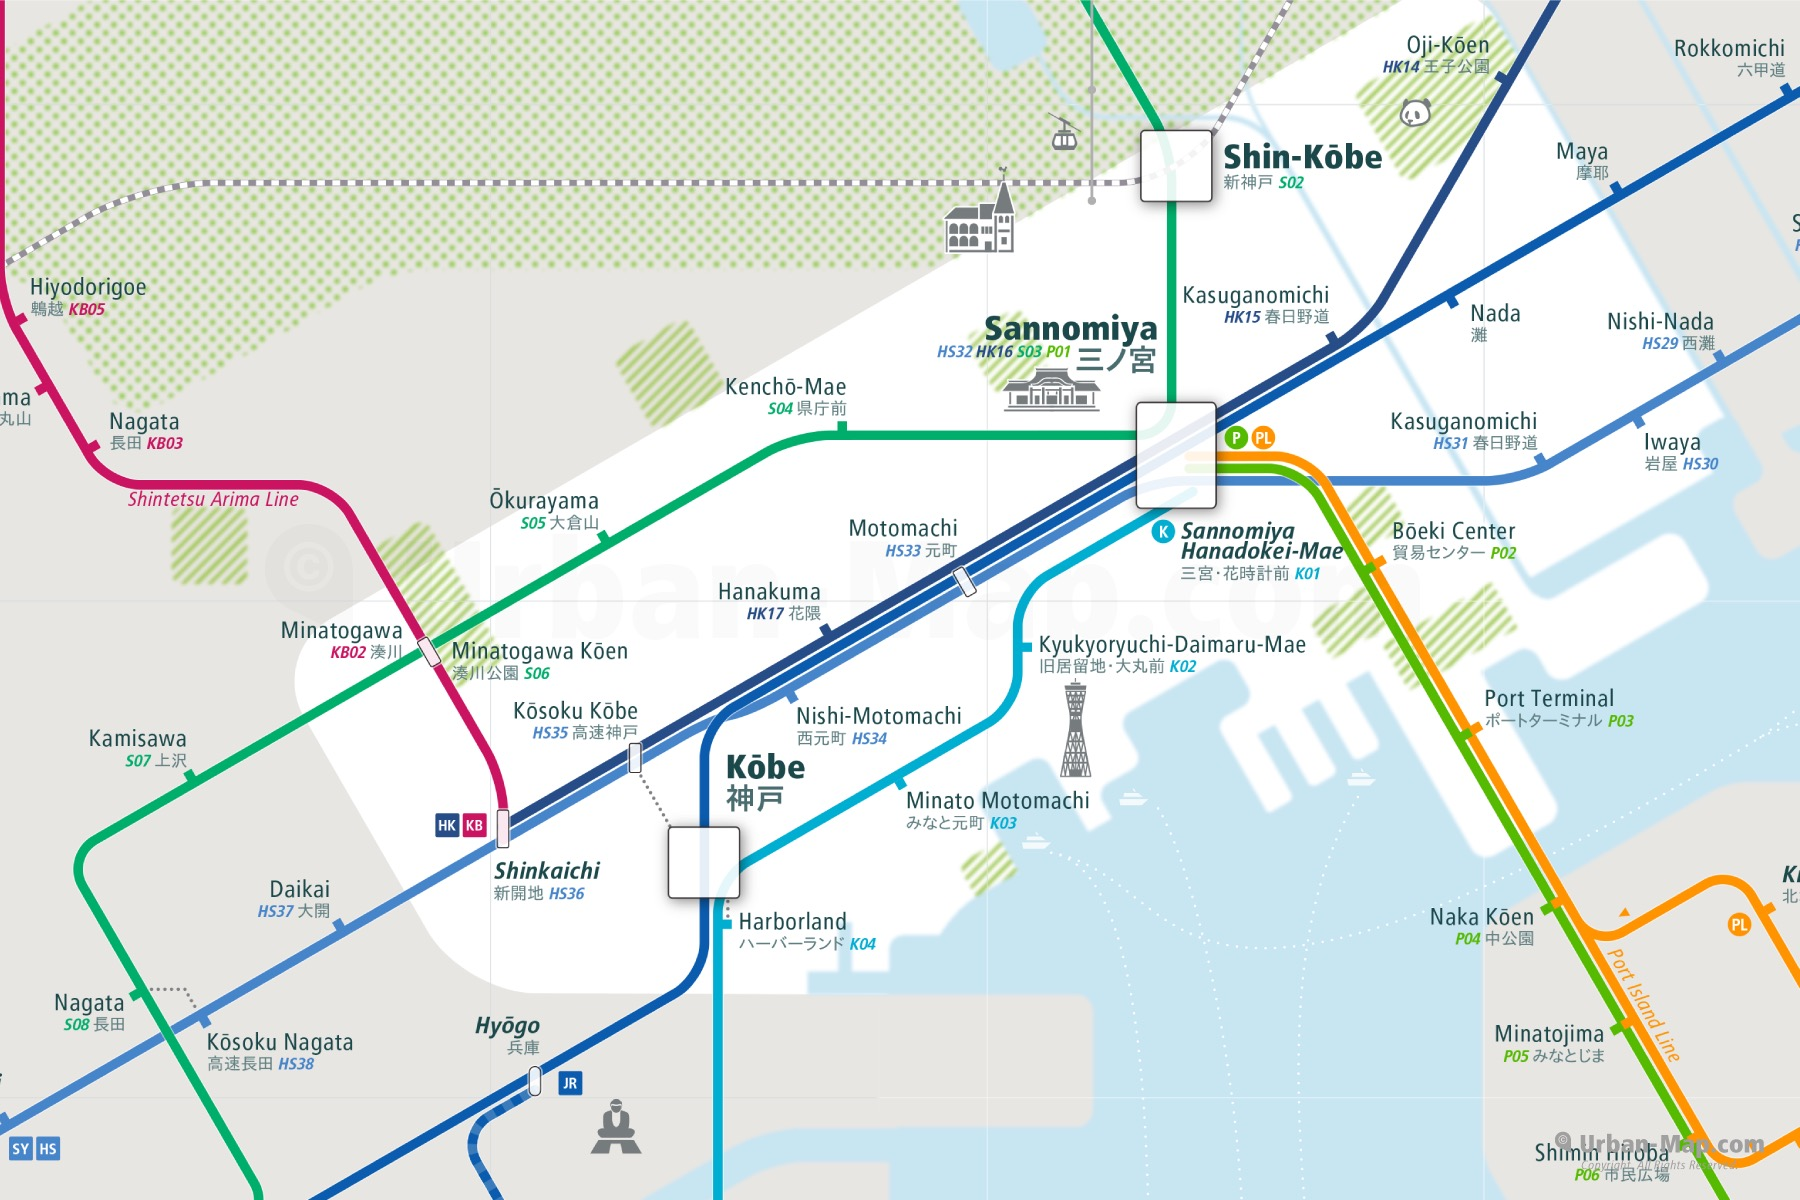 Kobe City Rail Map shows the train and public transportation routes of metro - Close-Up